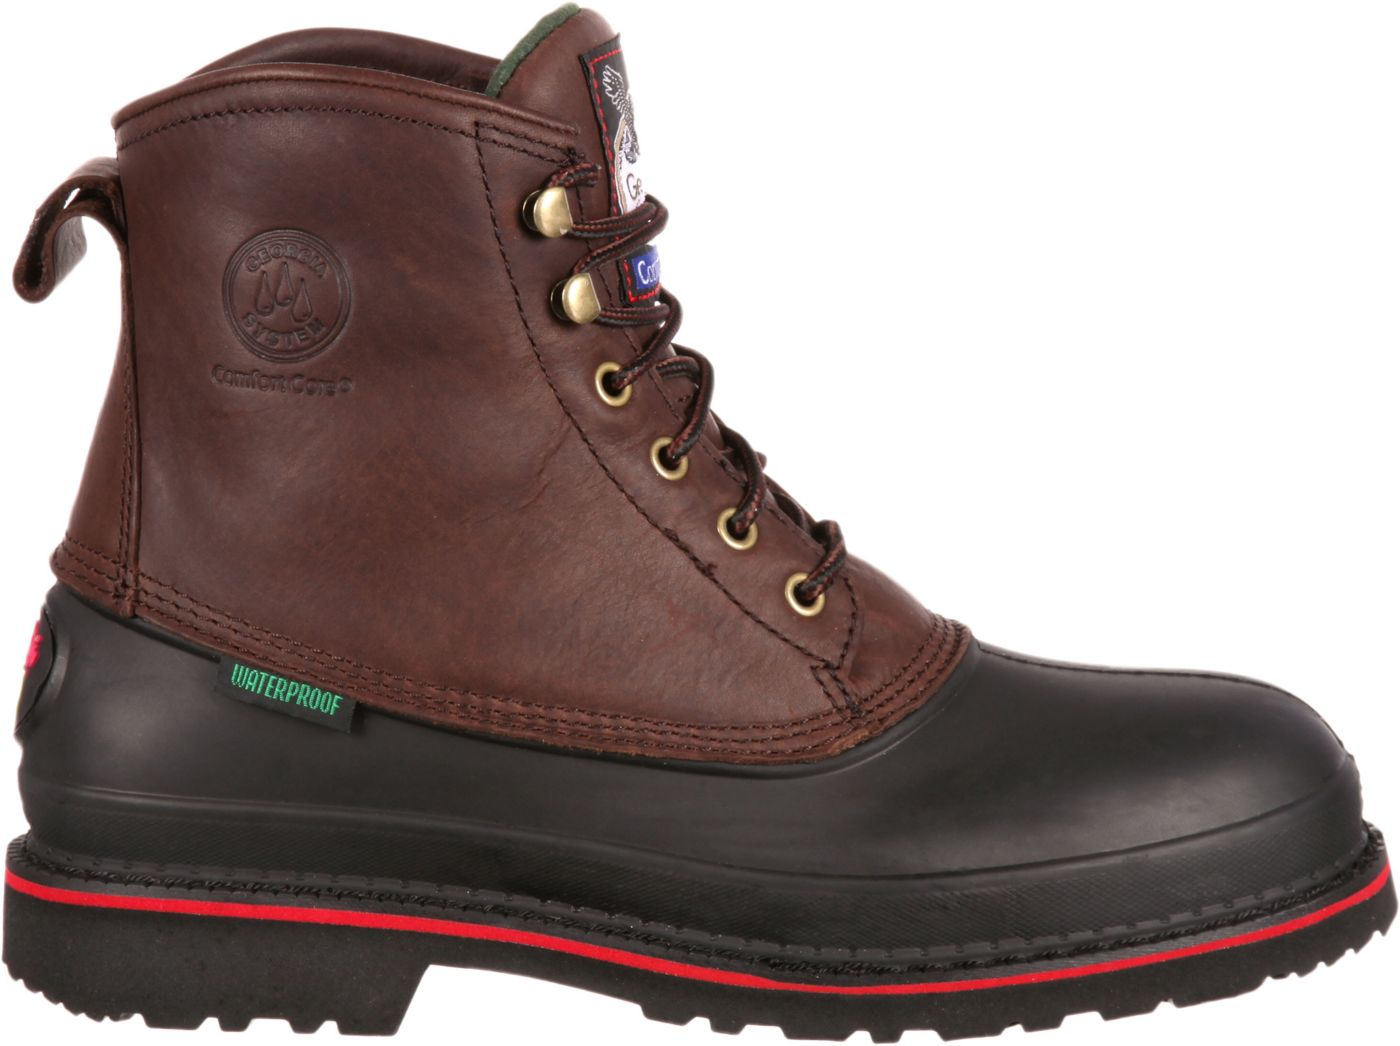 Georgia Boot Men's Muddog EH Waterproof Steel Toe Work Boots